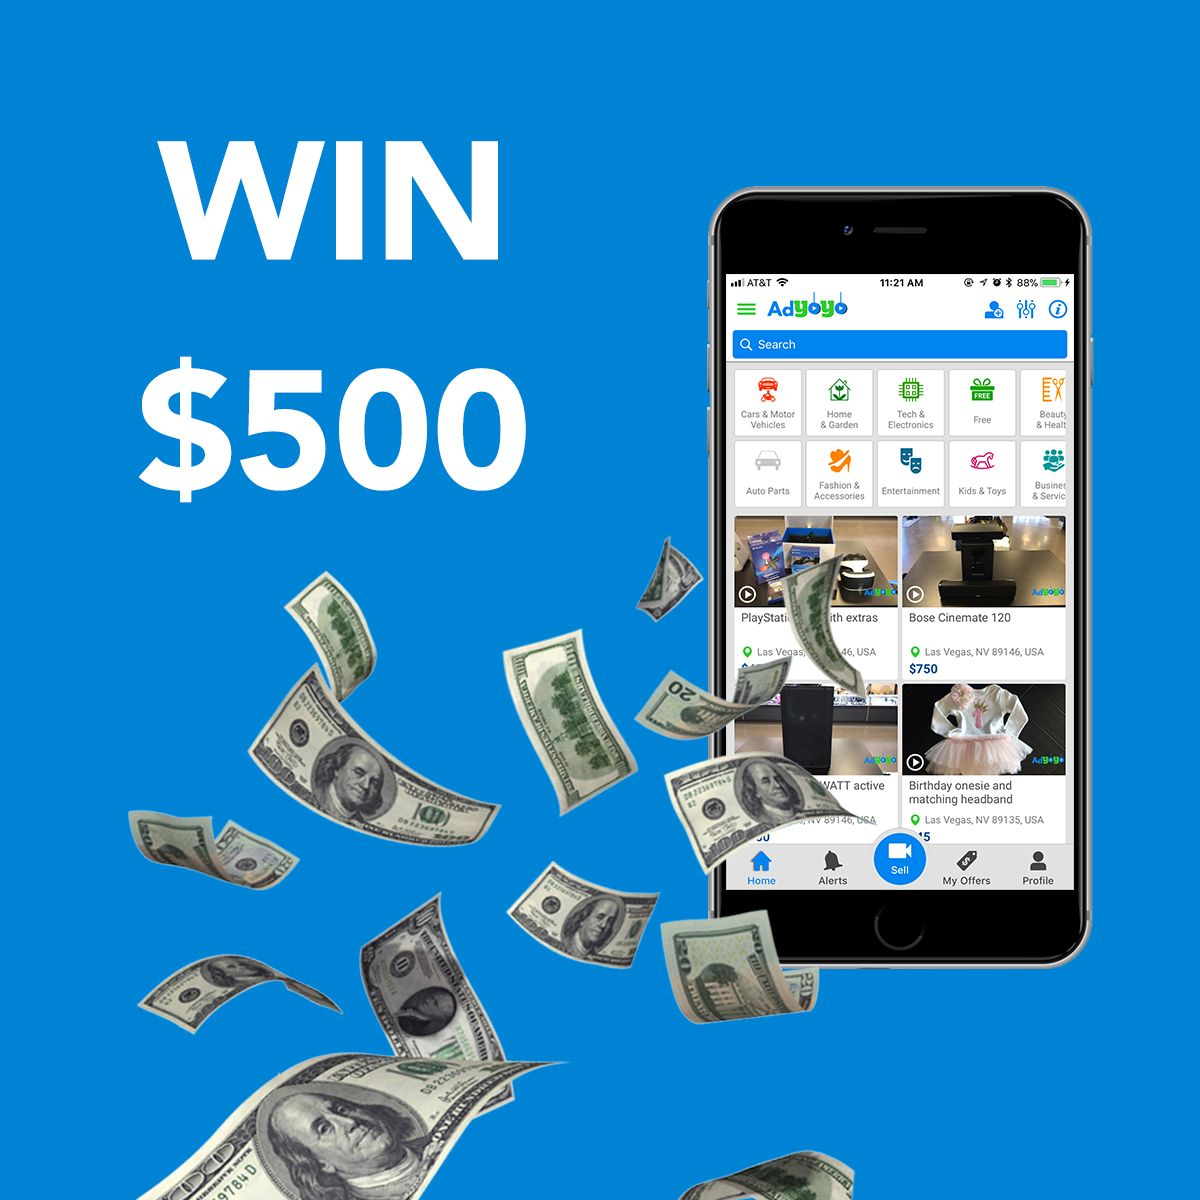 500 amex gift card giveaway usa only giveaway post an